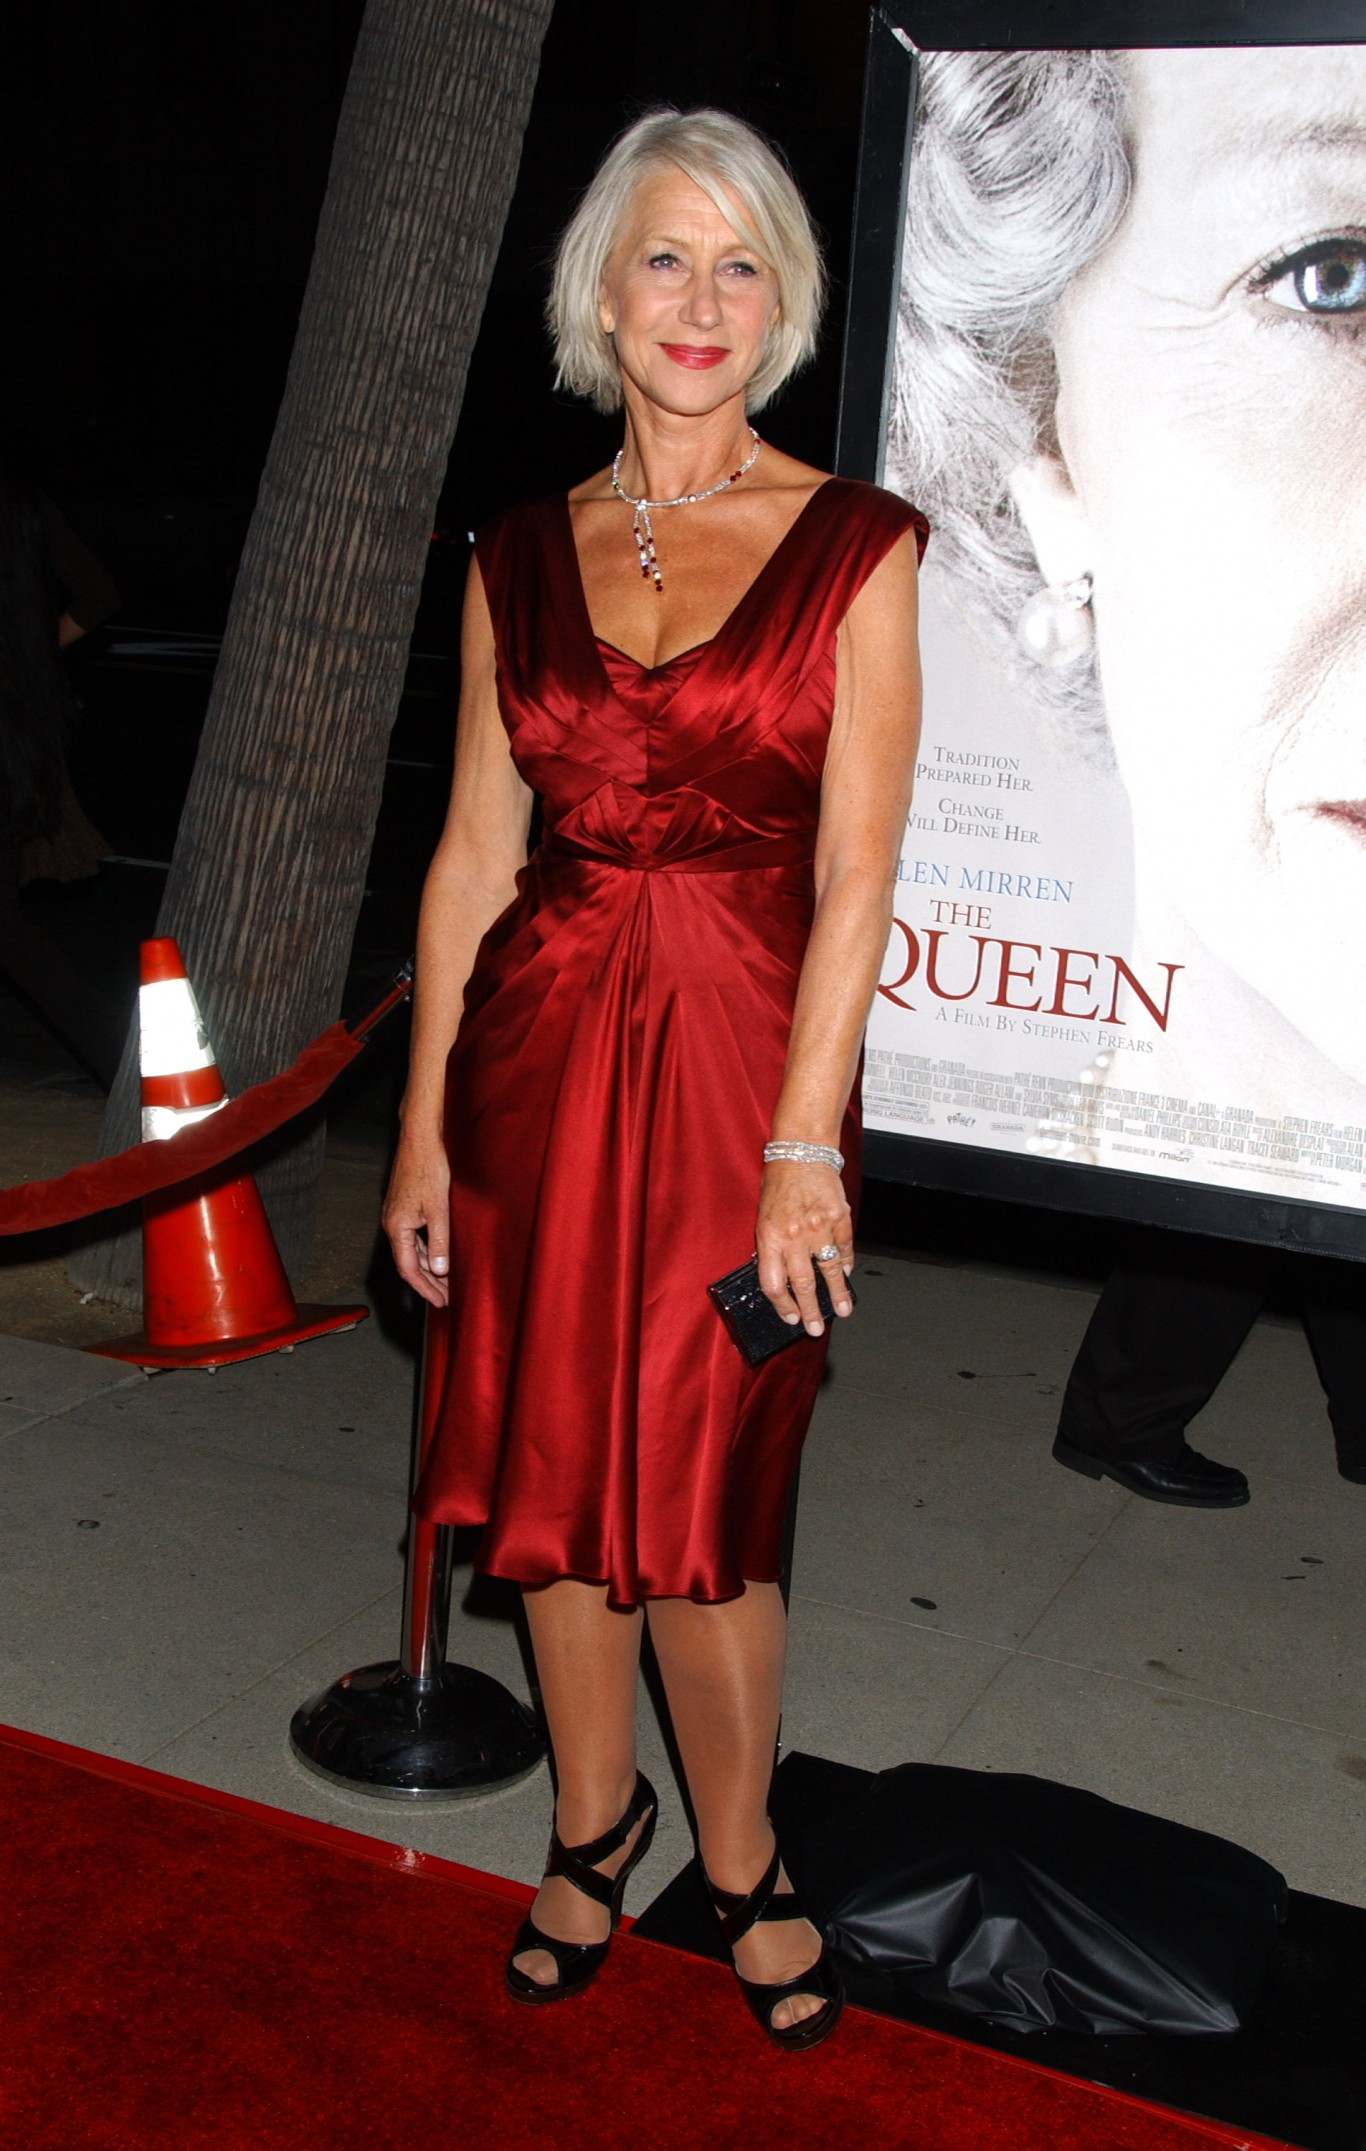 Helen Mirren at the LA premiere of The Queen in 2007